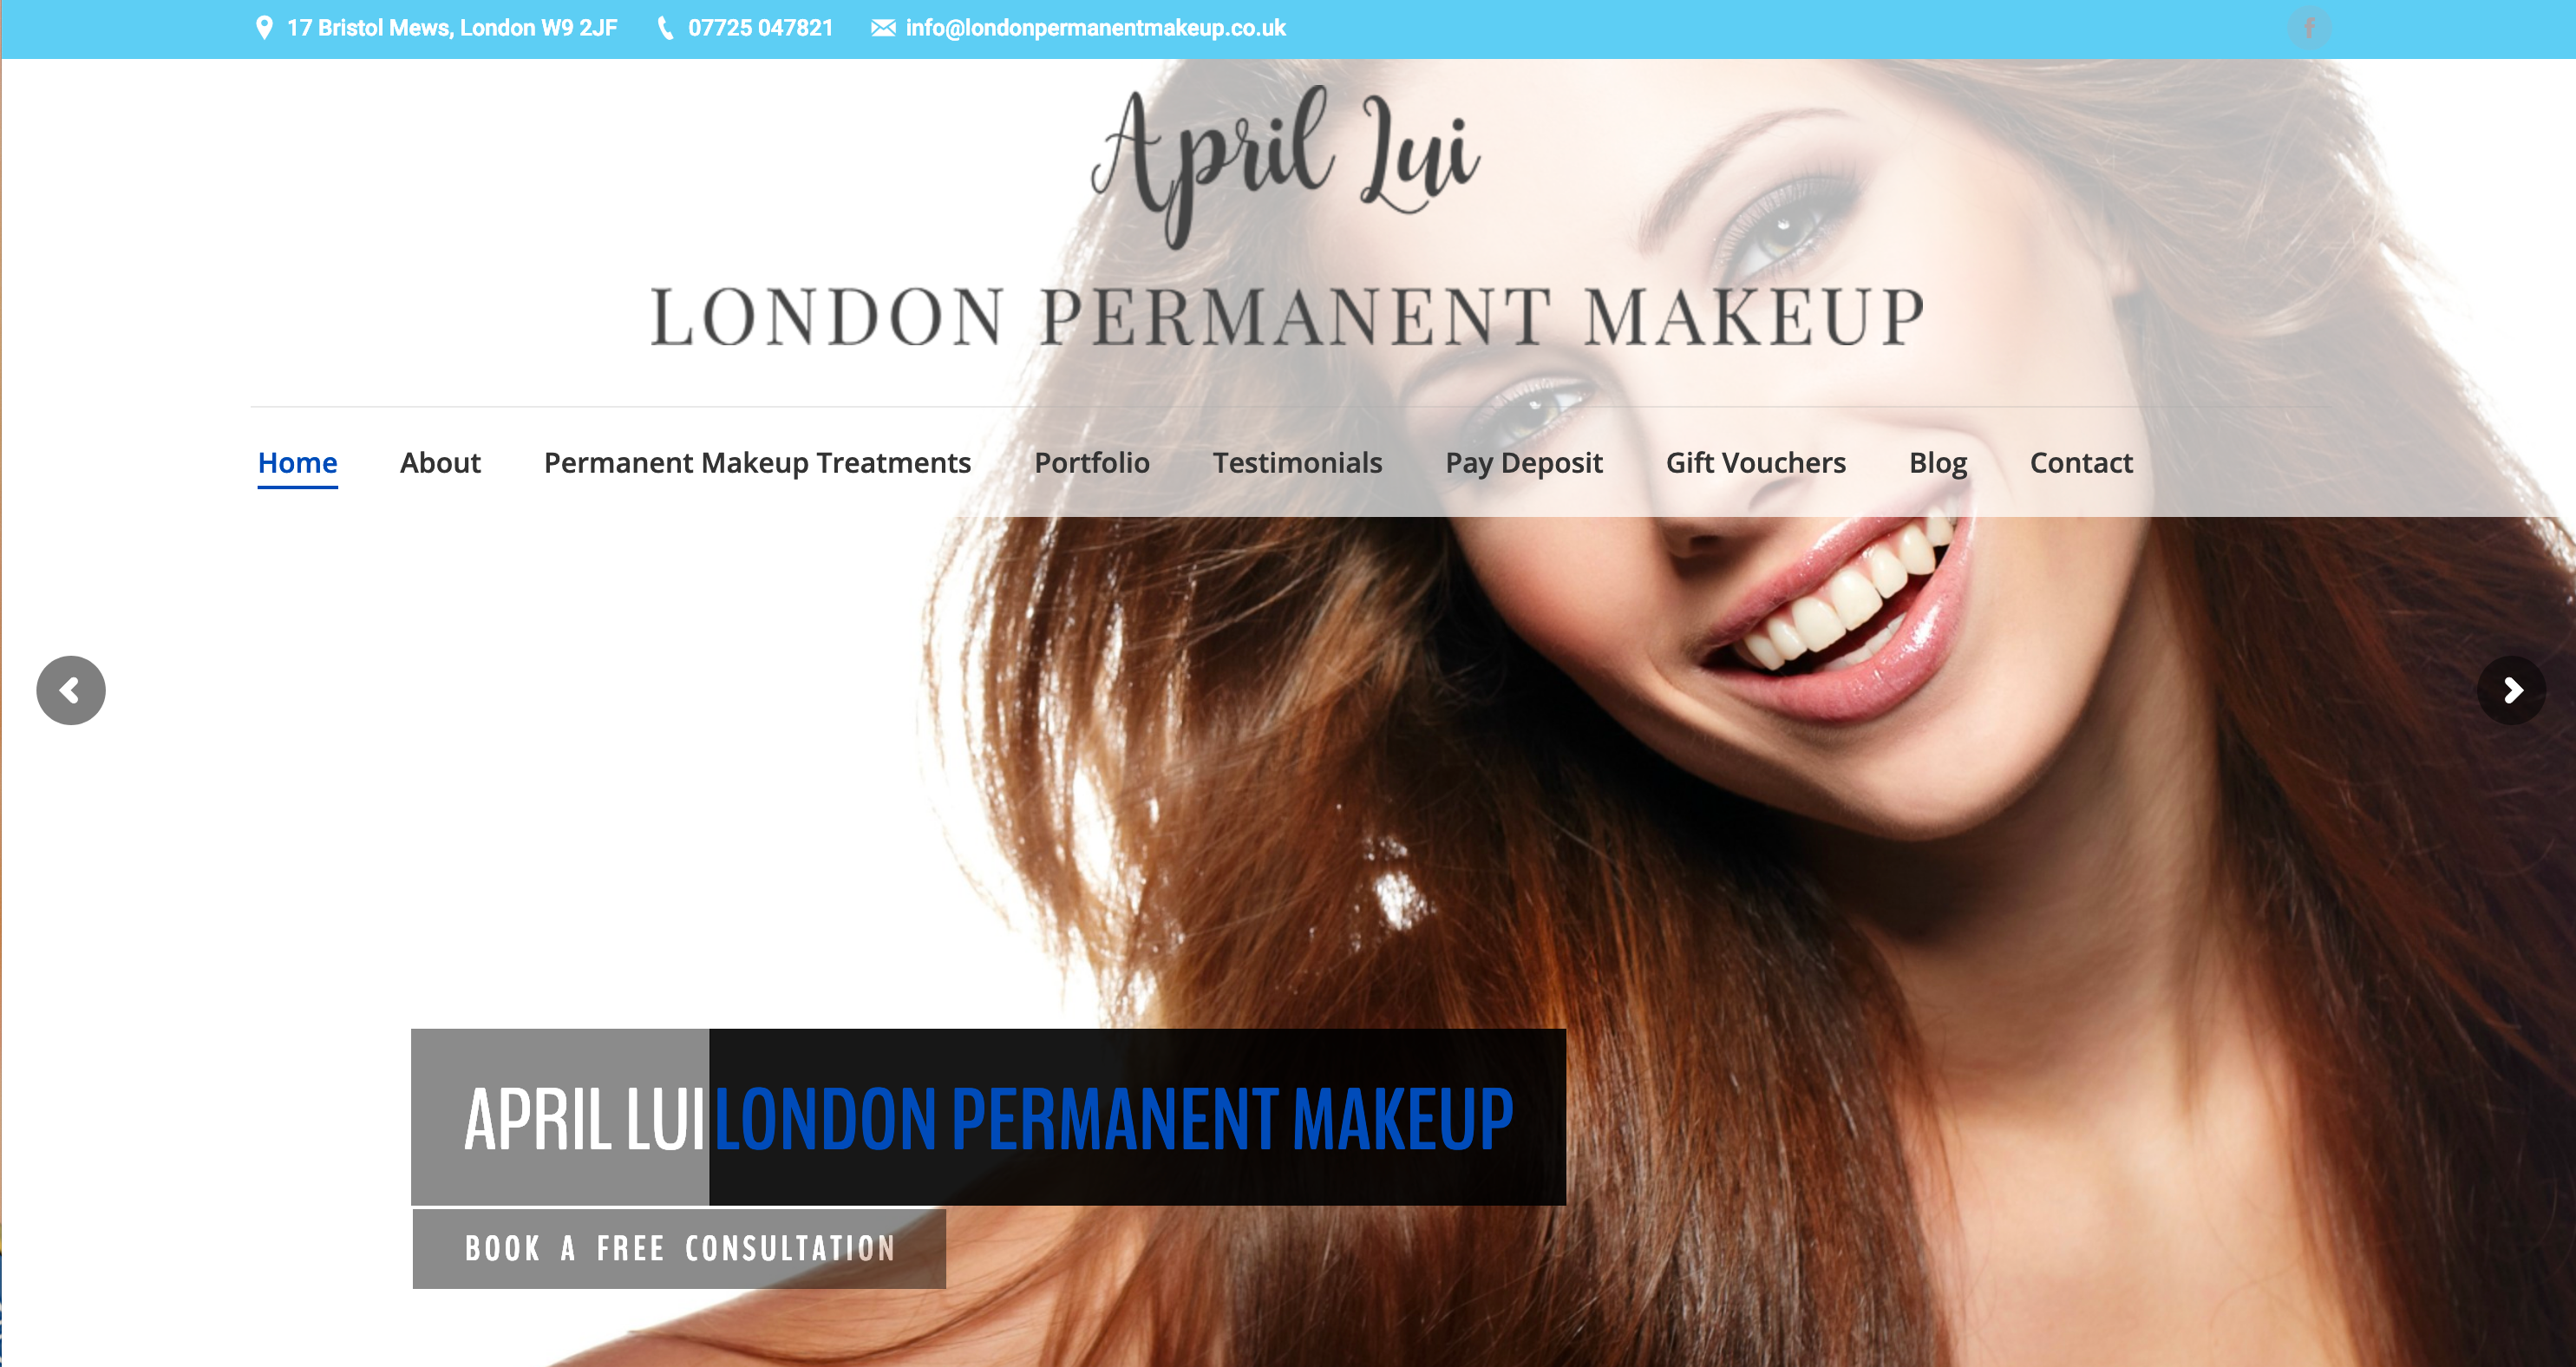 april lui london permanent makeup image